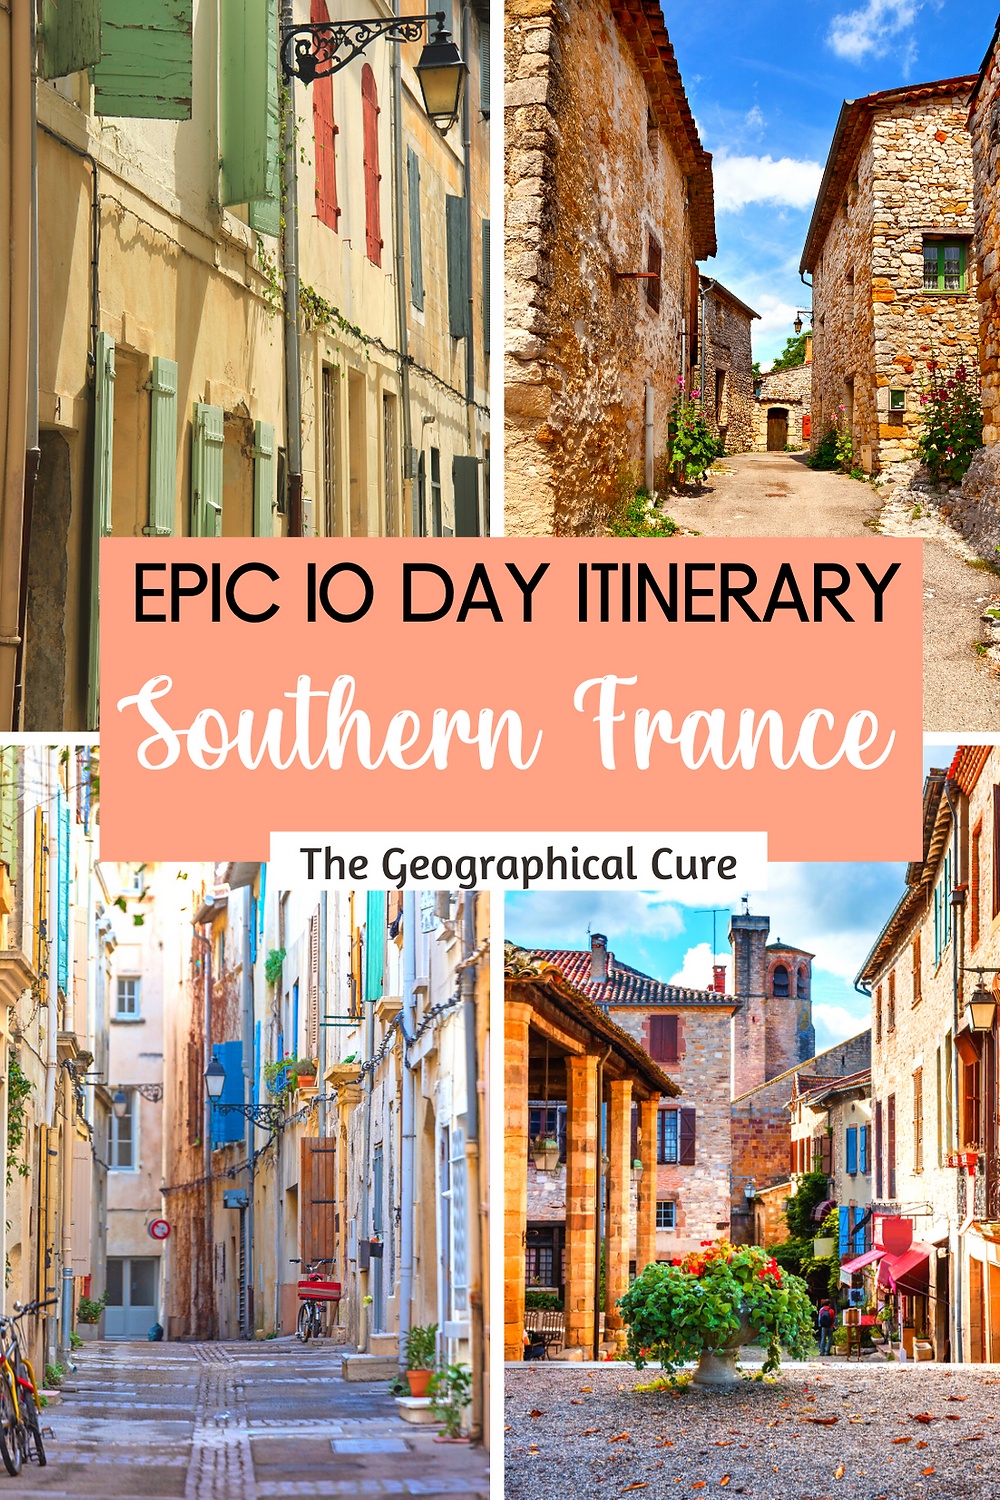 Epic 10 Day Road Trip Itinerary for Southern France